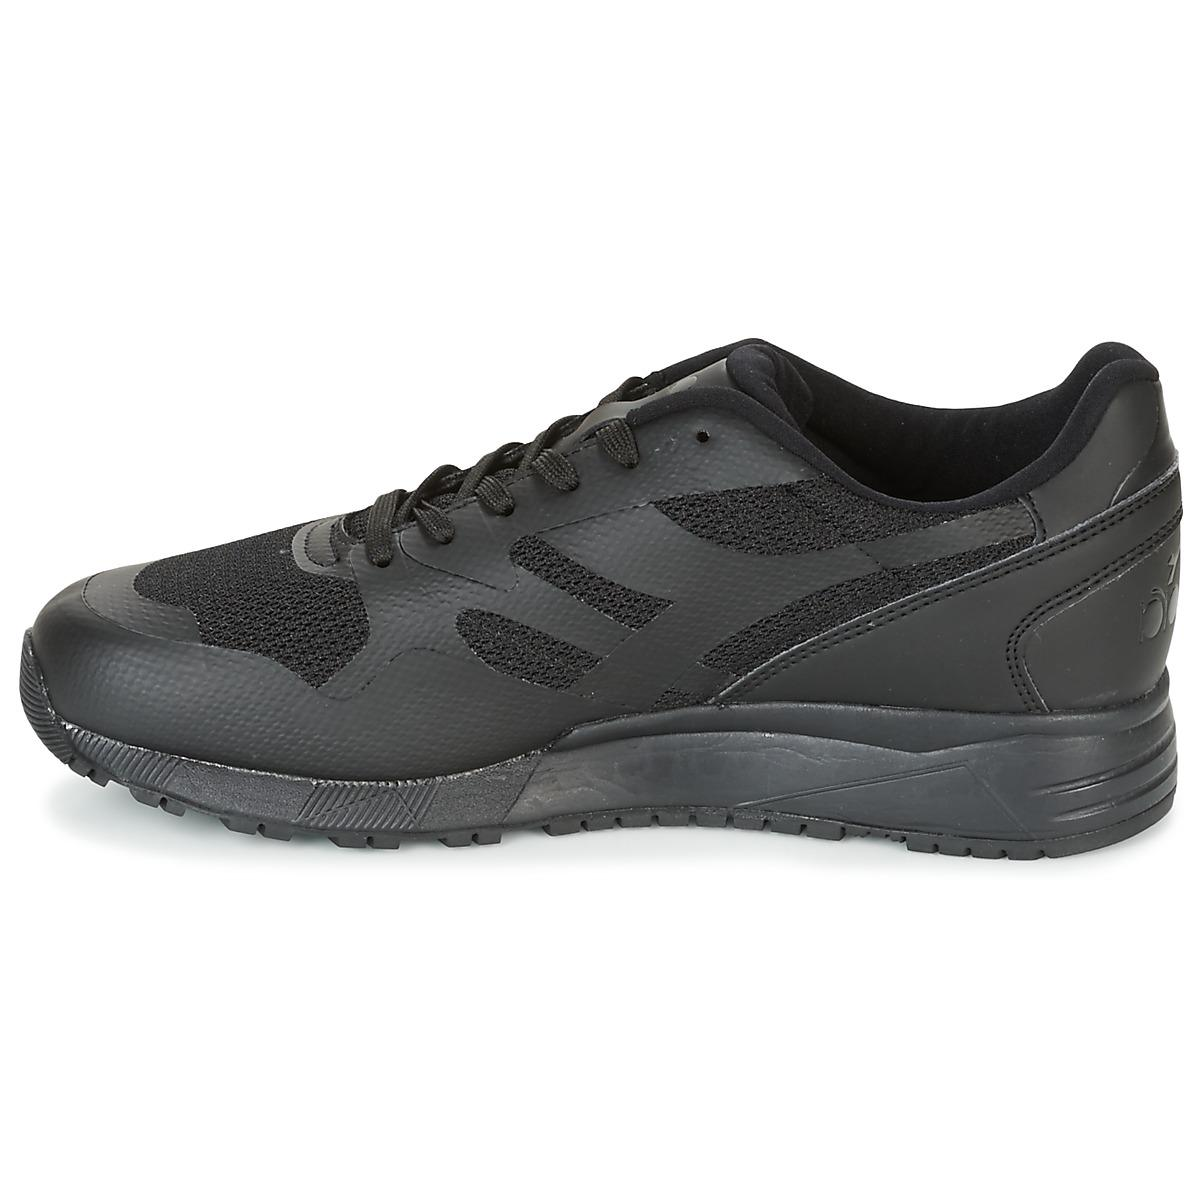 Diadora Synthetic N902 Mm Shoes (trainers) in Black - Save 12%